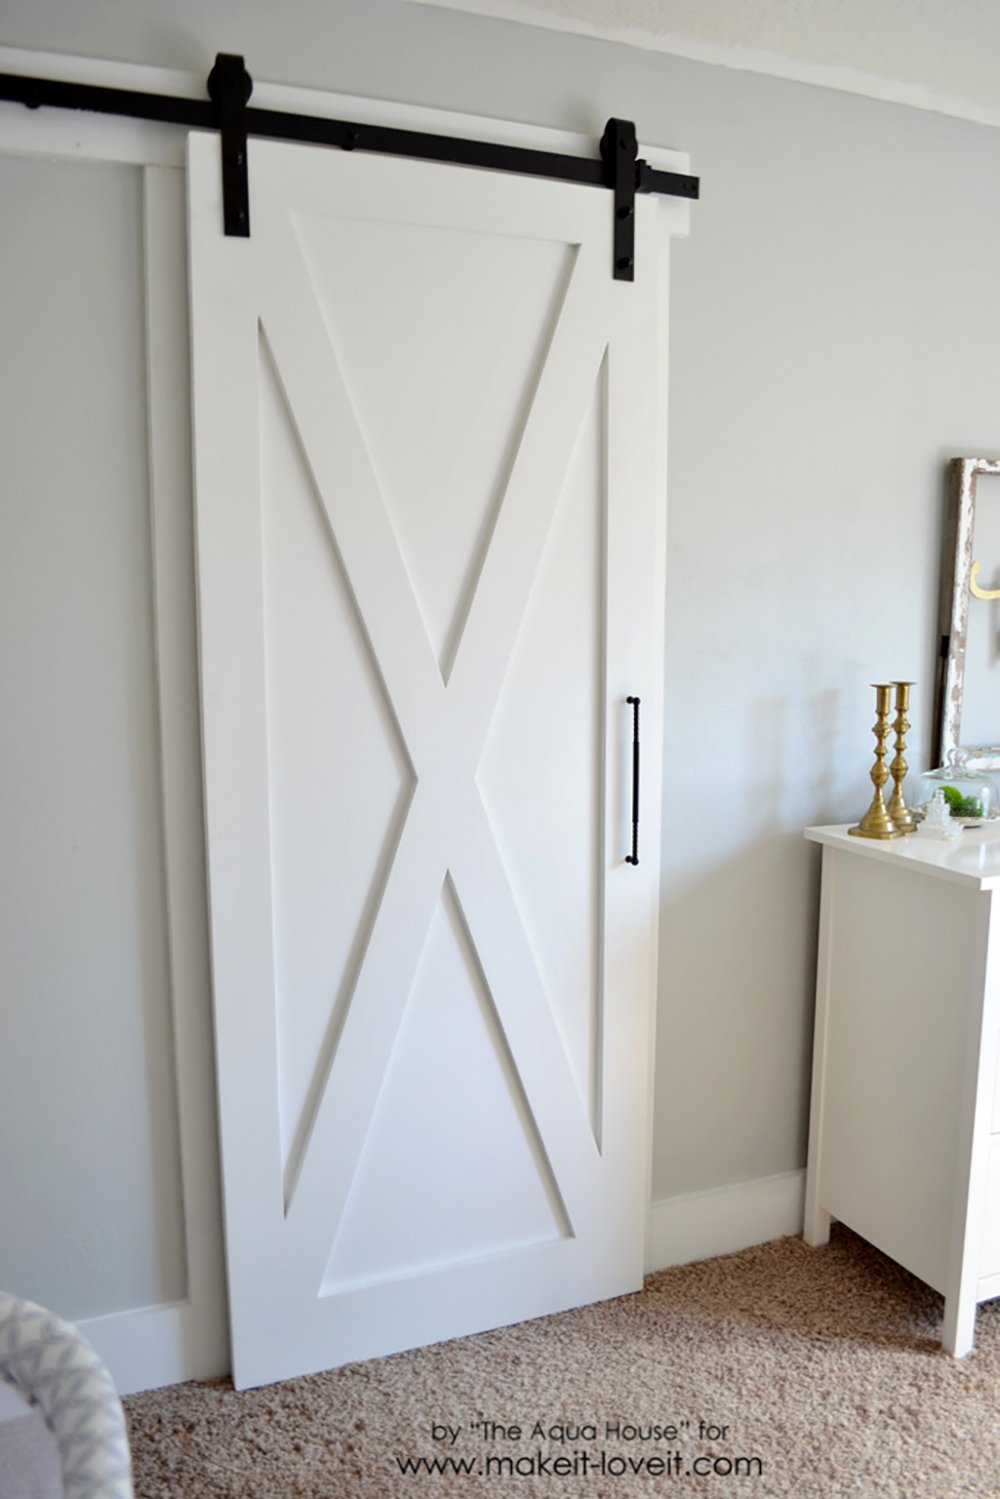 This interesting plywood sliding closet door is farmhouse and industrial too.